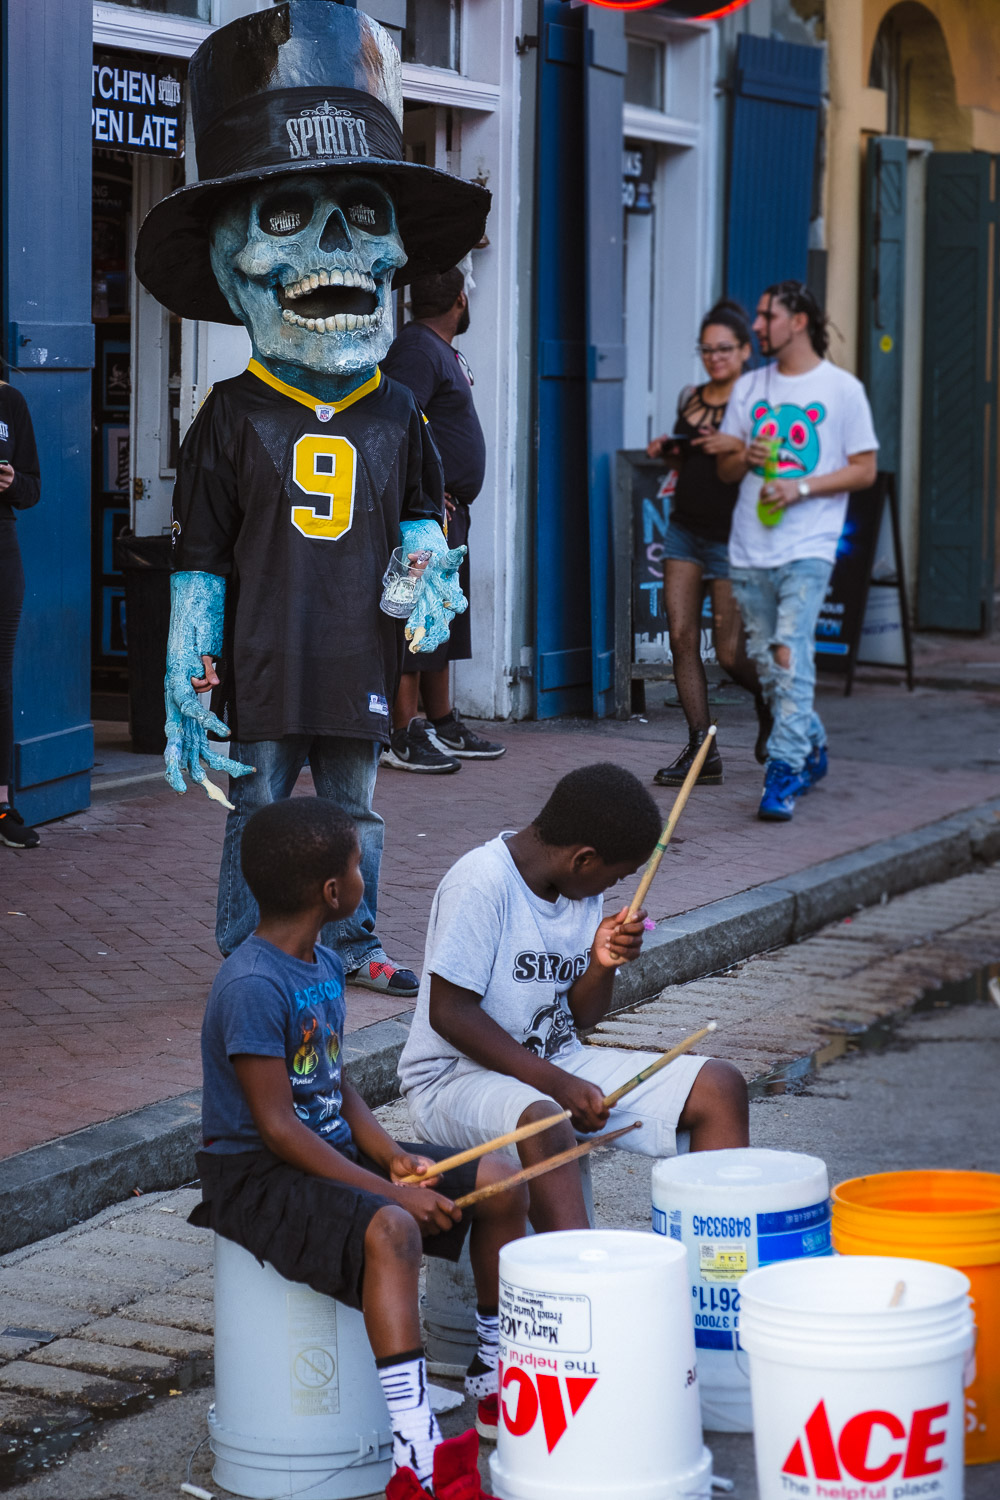 """Halloween in the French Quarter - Travel photography and guide by © Natasha Lequepeys for """"And Then I Met Yoko"""". #neworleans #nola #photoblog #streetphotography #travelitinerary #fujifilm"""